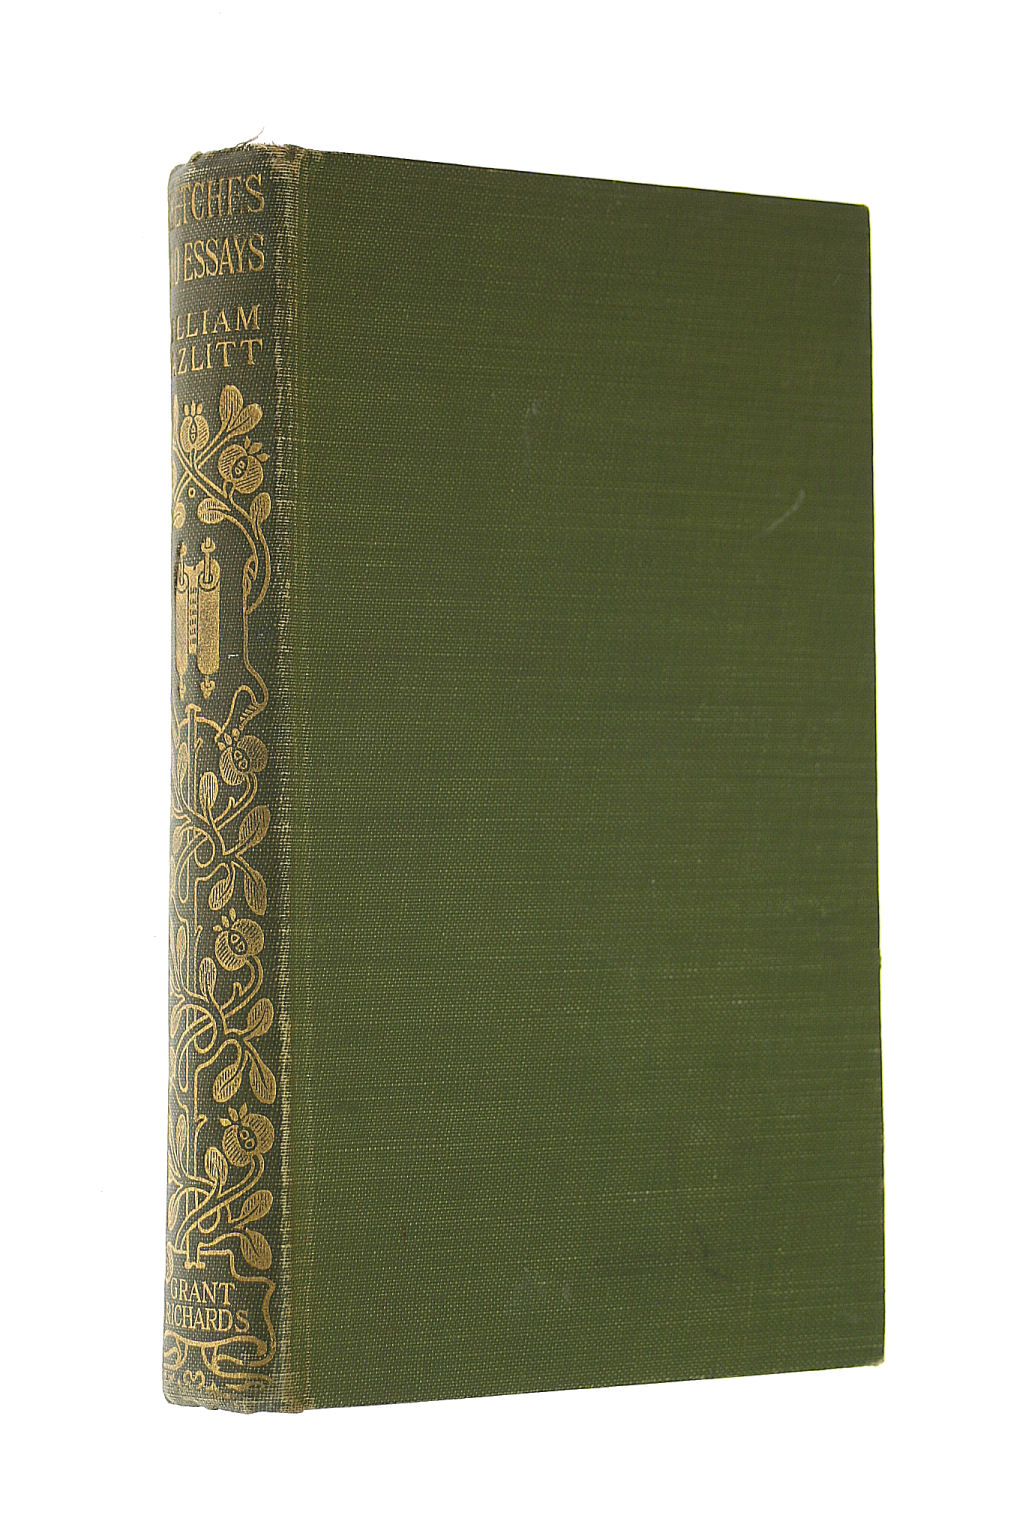 Image for Sketches And Essays, [The Works Of William Hazlitt Ii, Oxford World'S Classics 15]